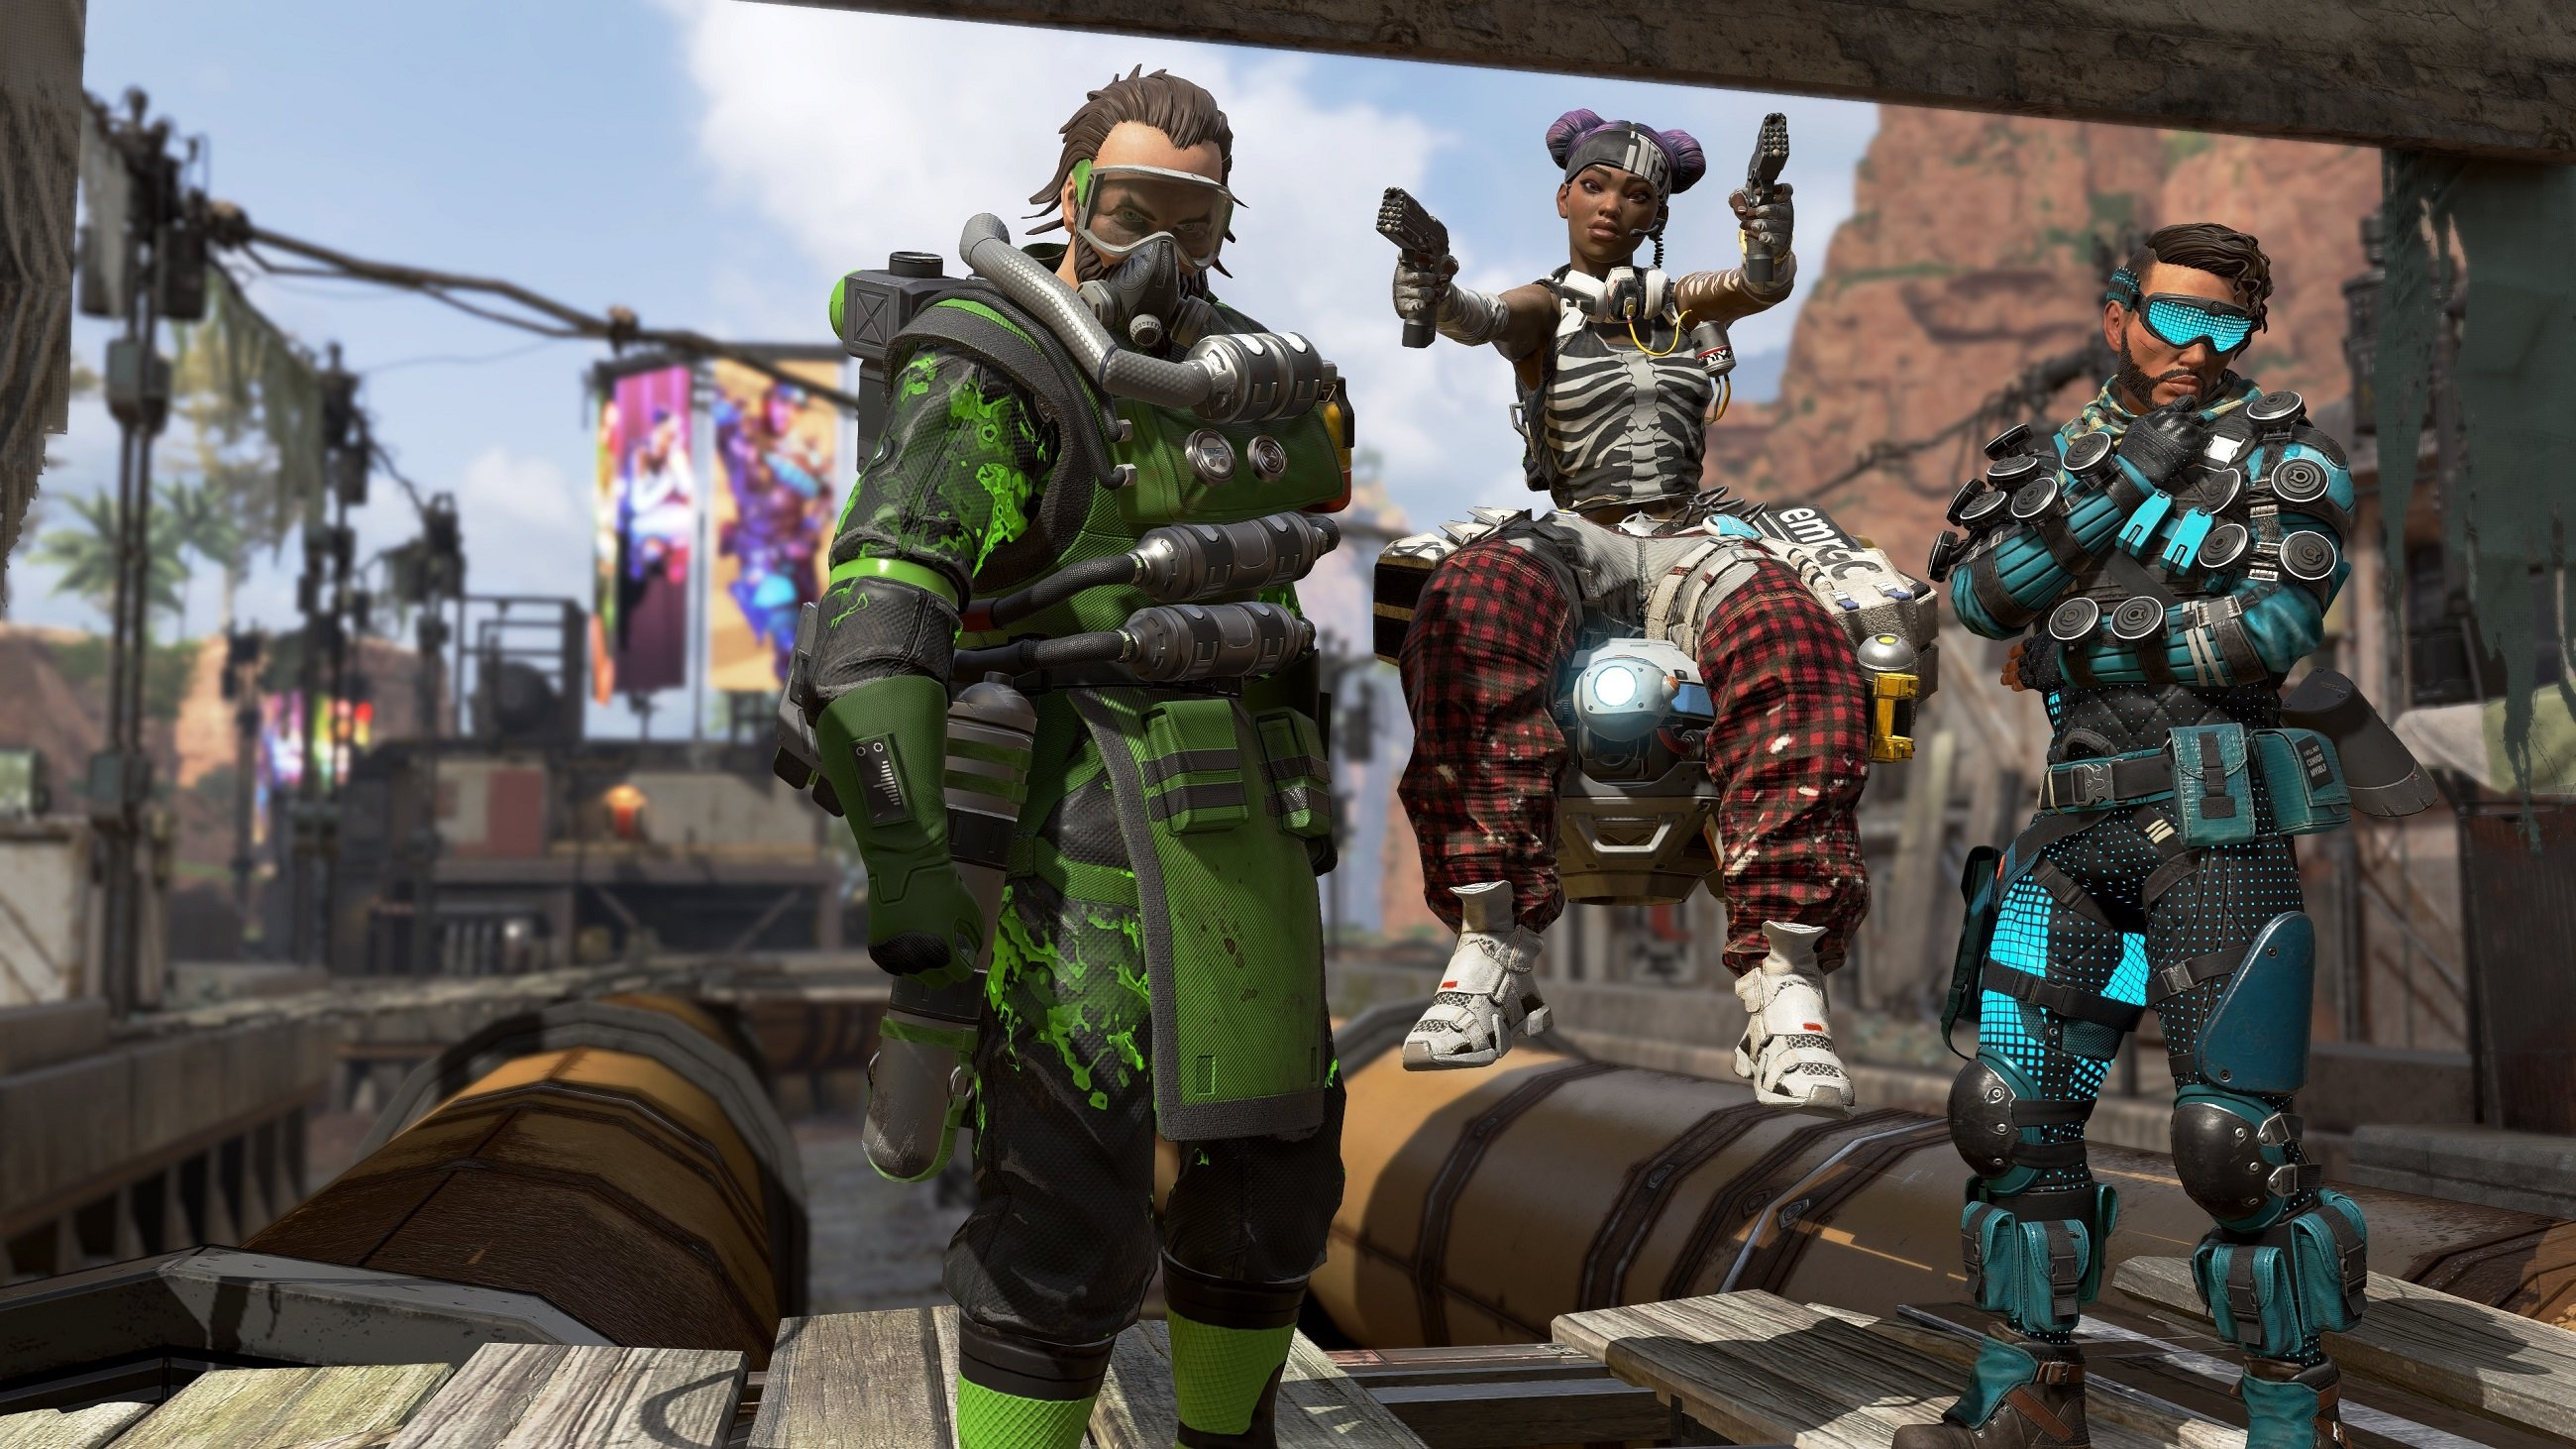 Below, we've listed the minimum and recommended requirements for Apex Legends on PC.